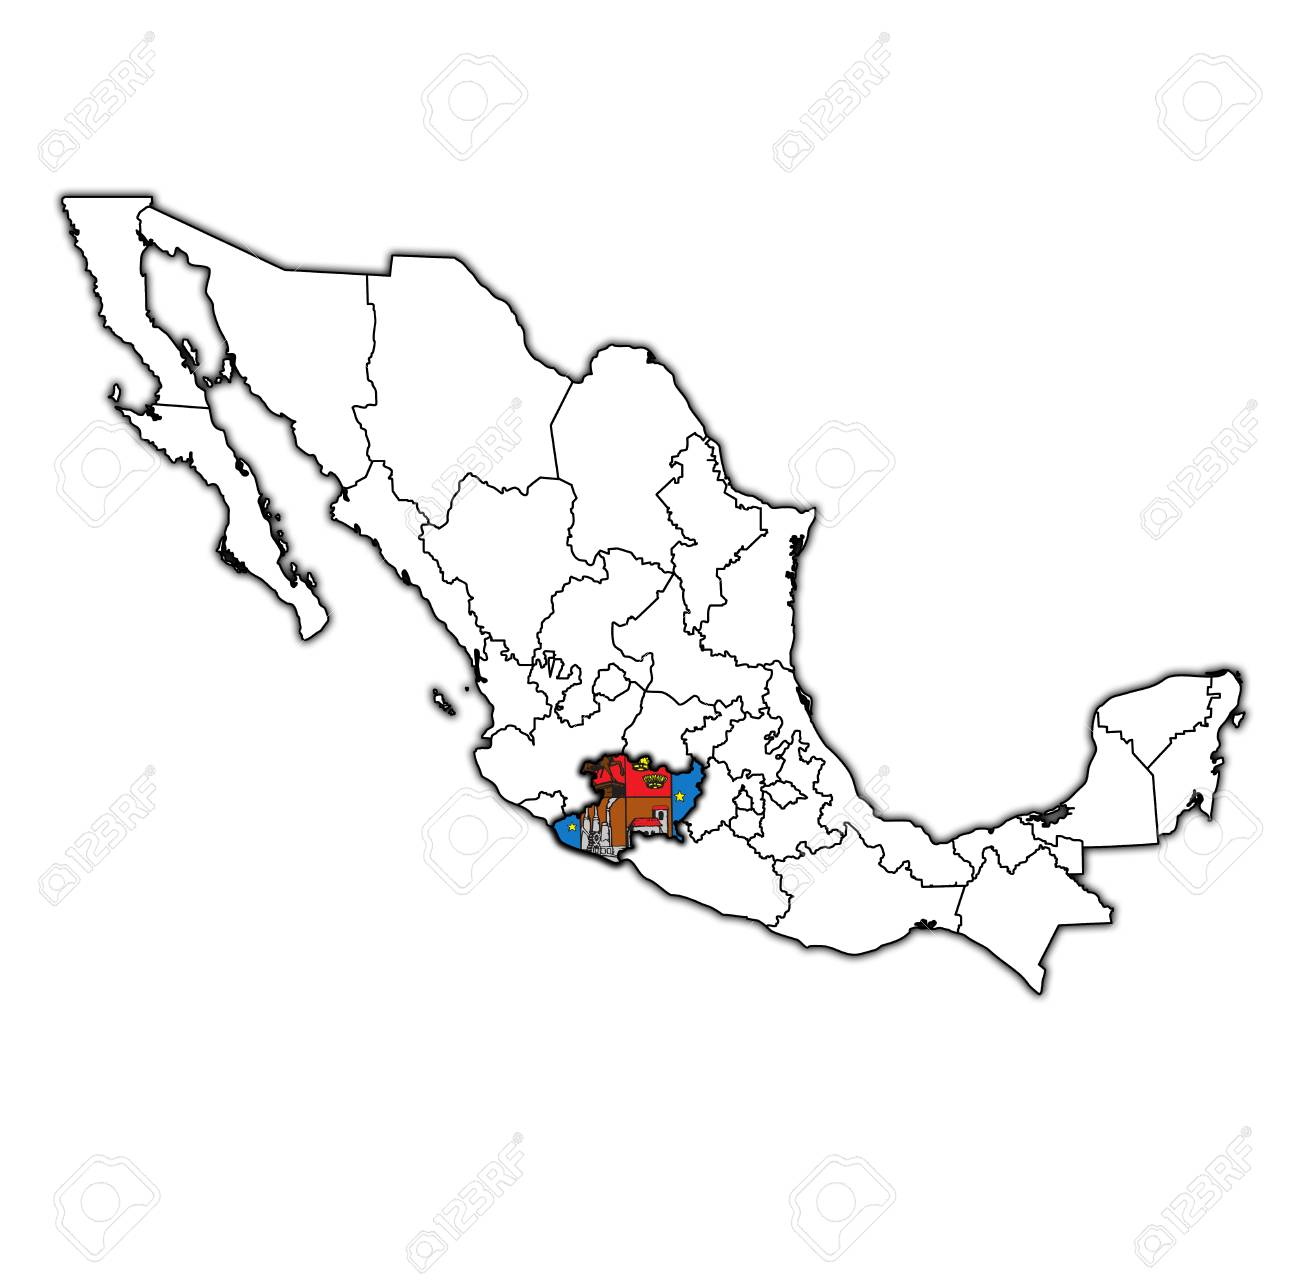 emblem of Michoacan state on map with administrative divisions..